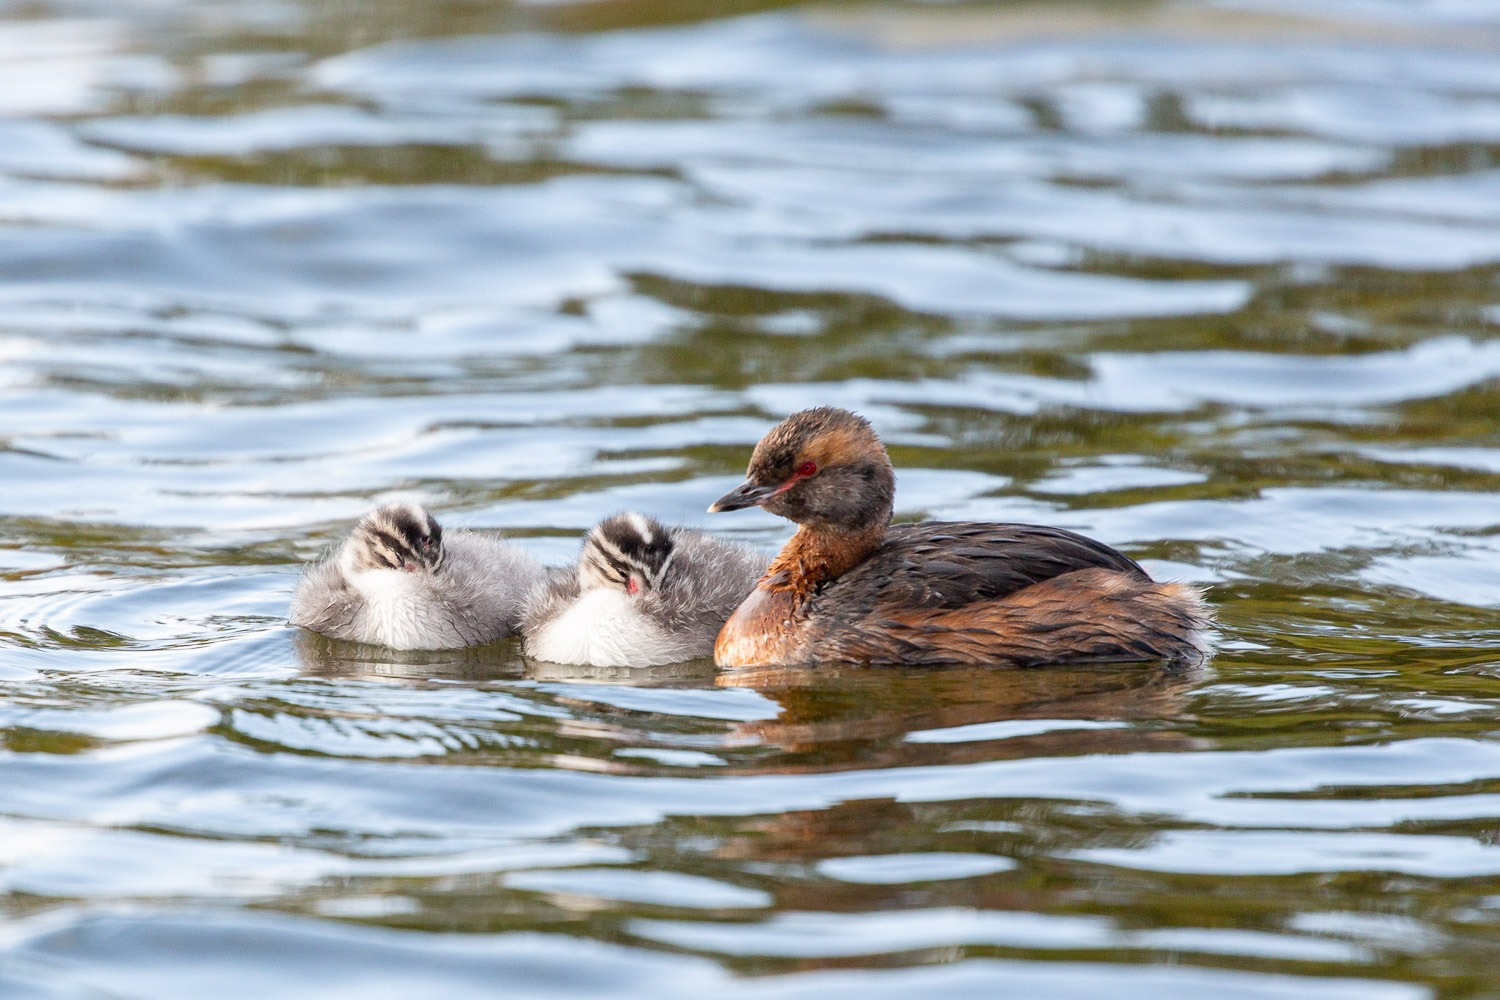 slavonian grebe with two chicks on water